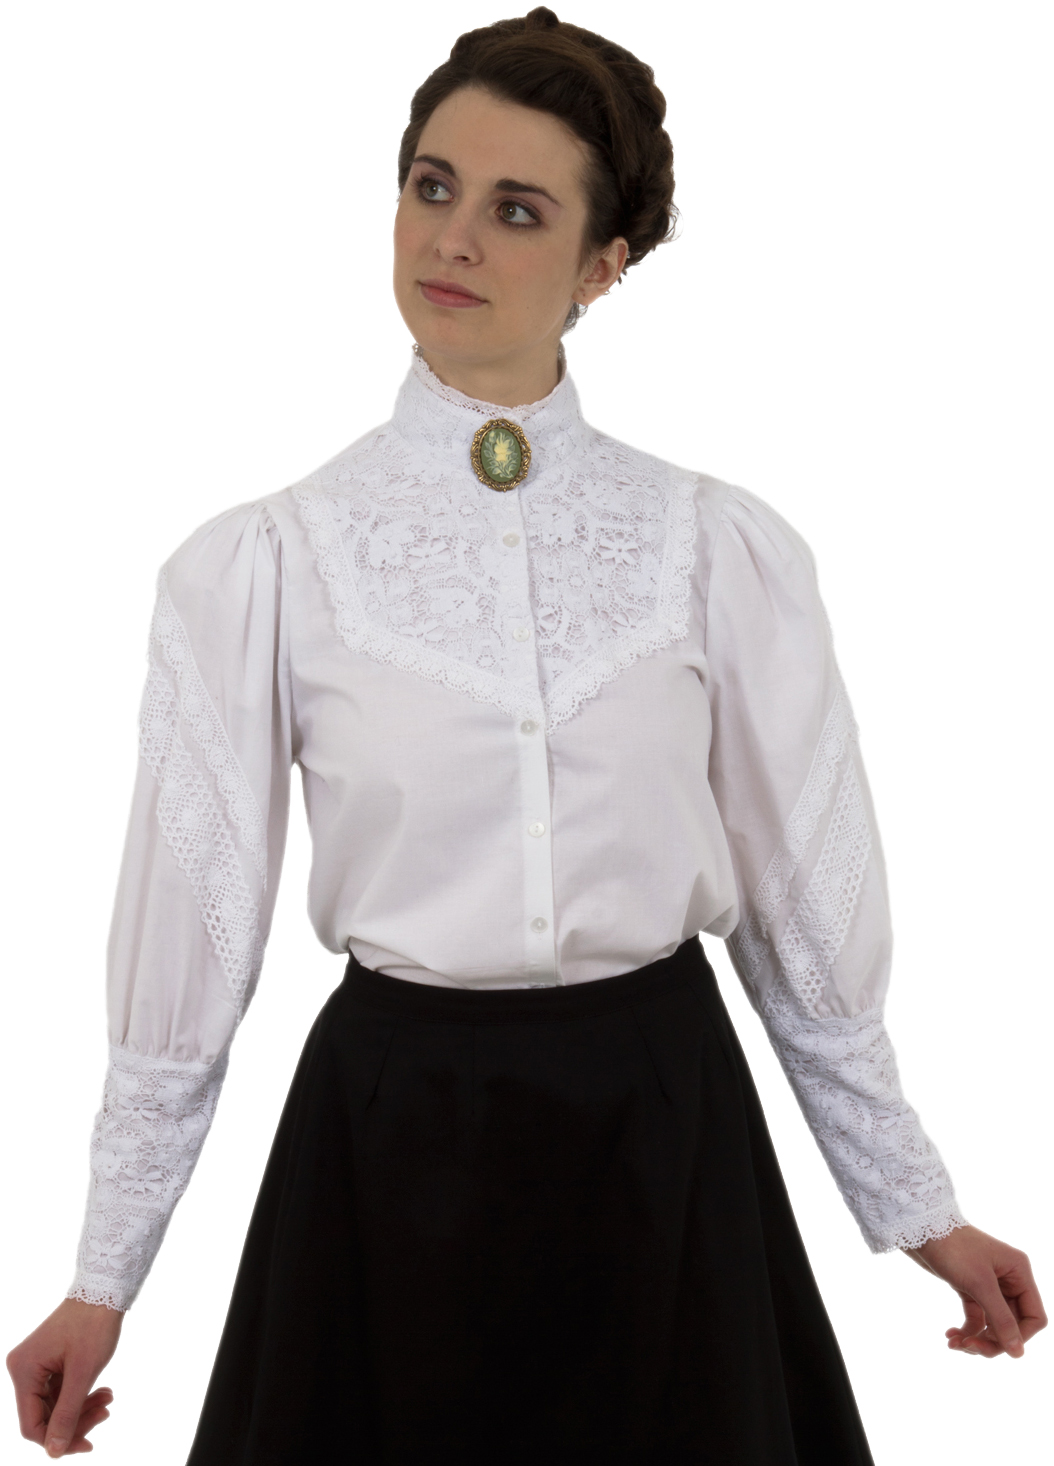 e6f2f60e40598c A Reformation  The Victorian Blouse - Recollections Blog